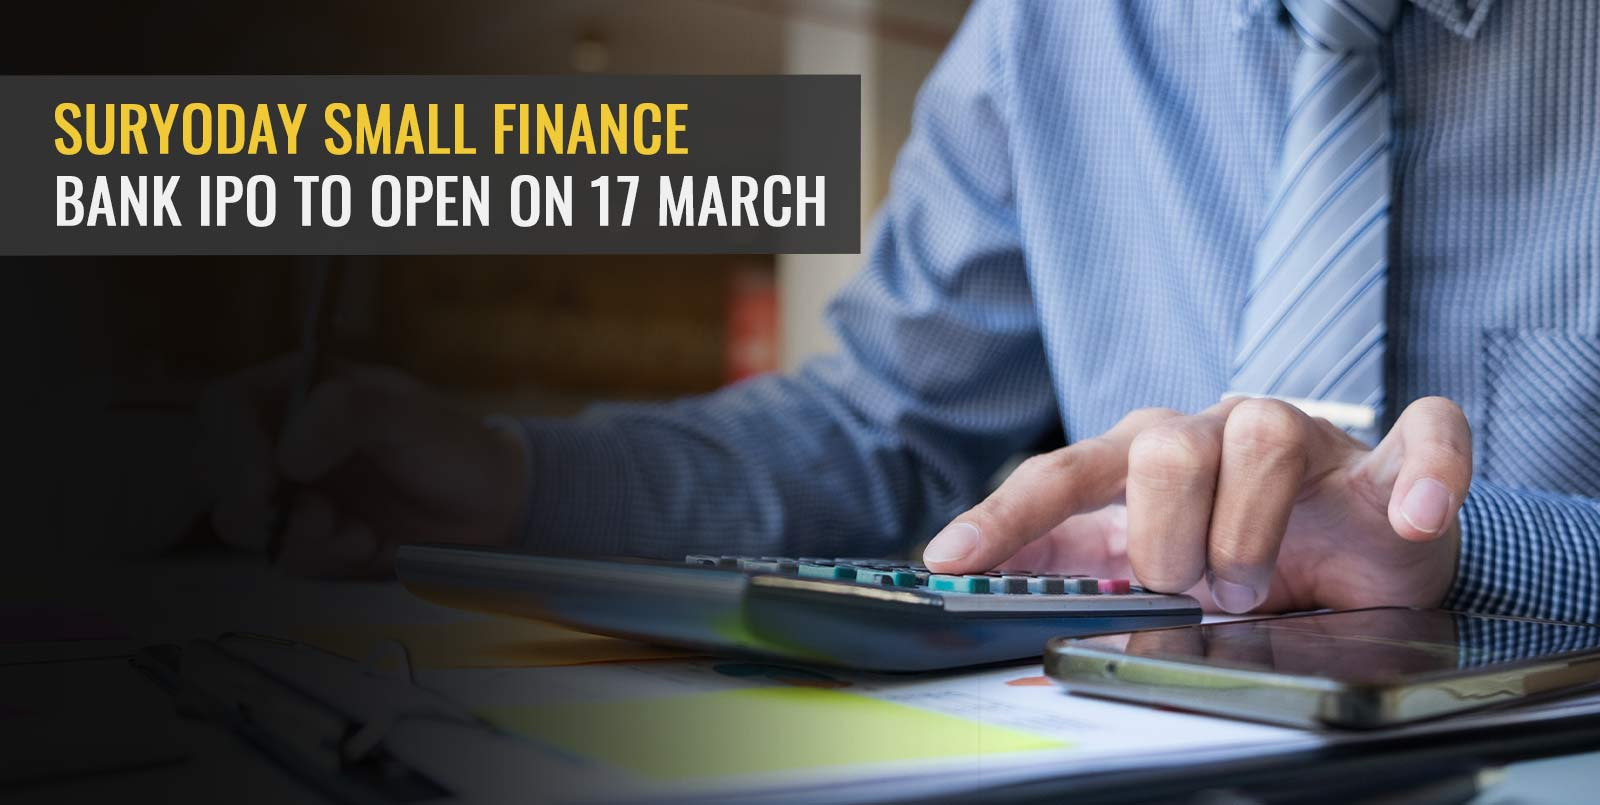 Suryoday Small Finance Bank IPO to open on 17 March